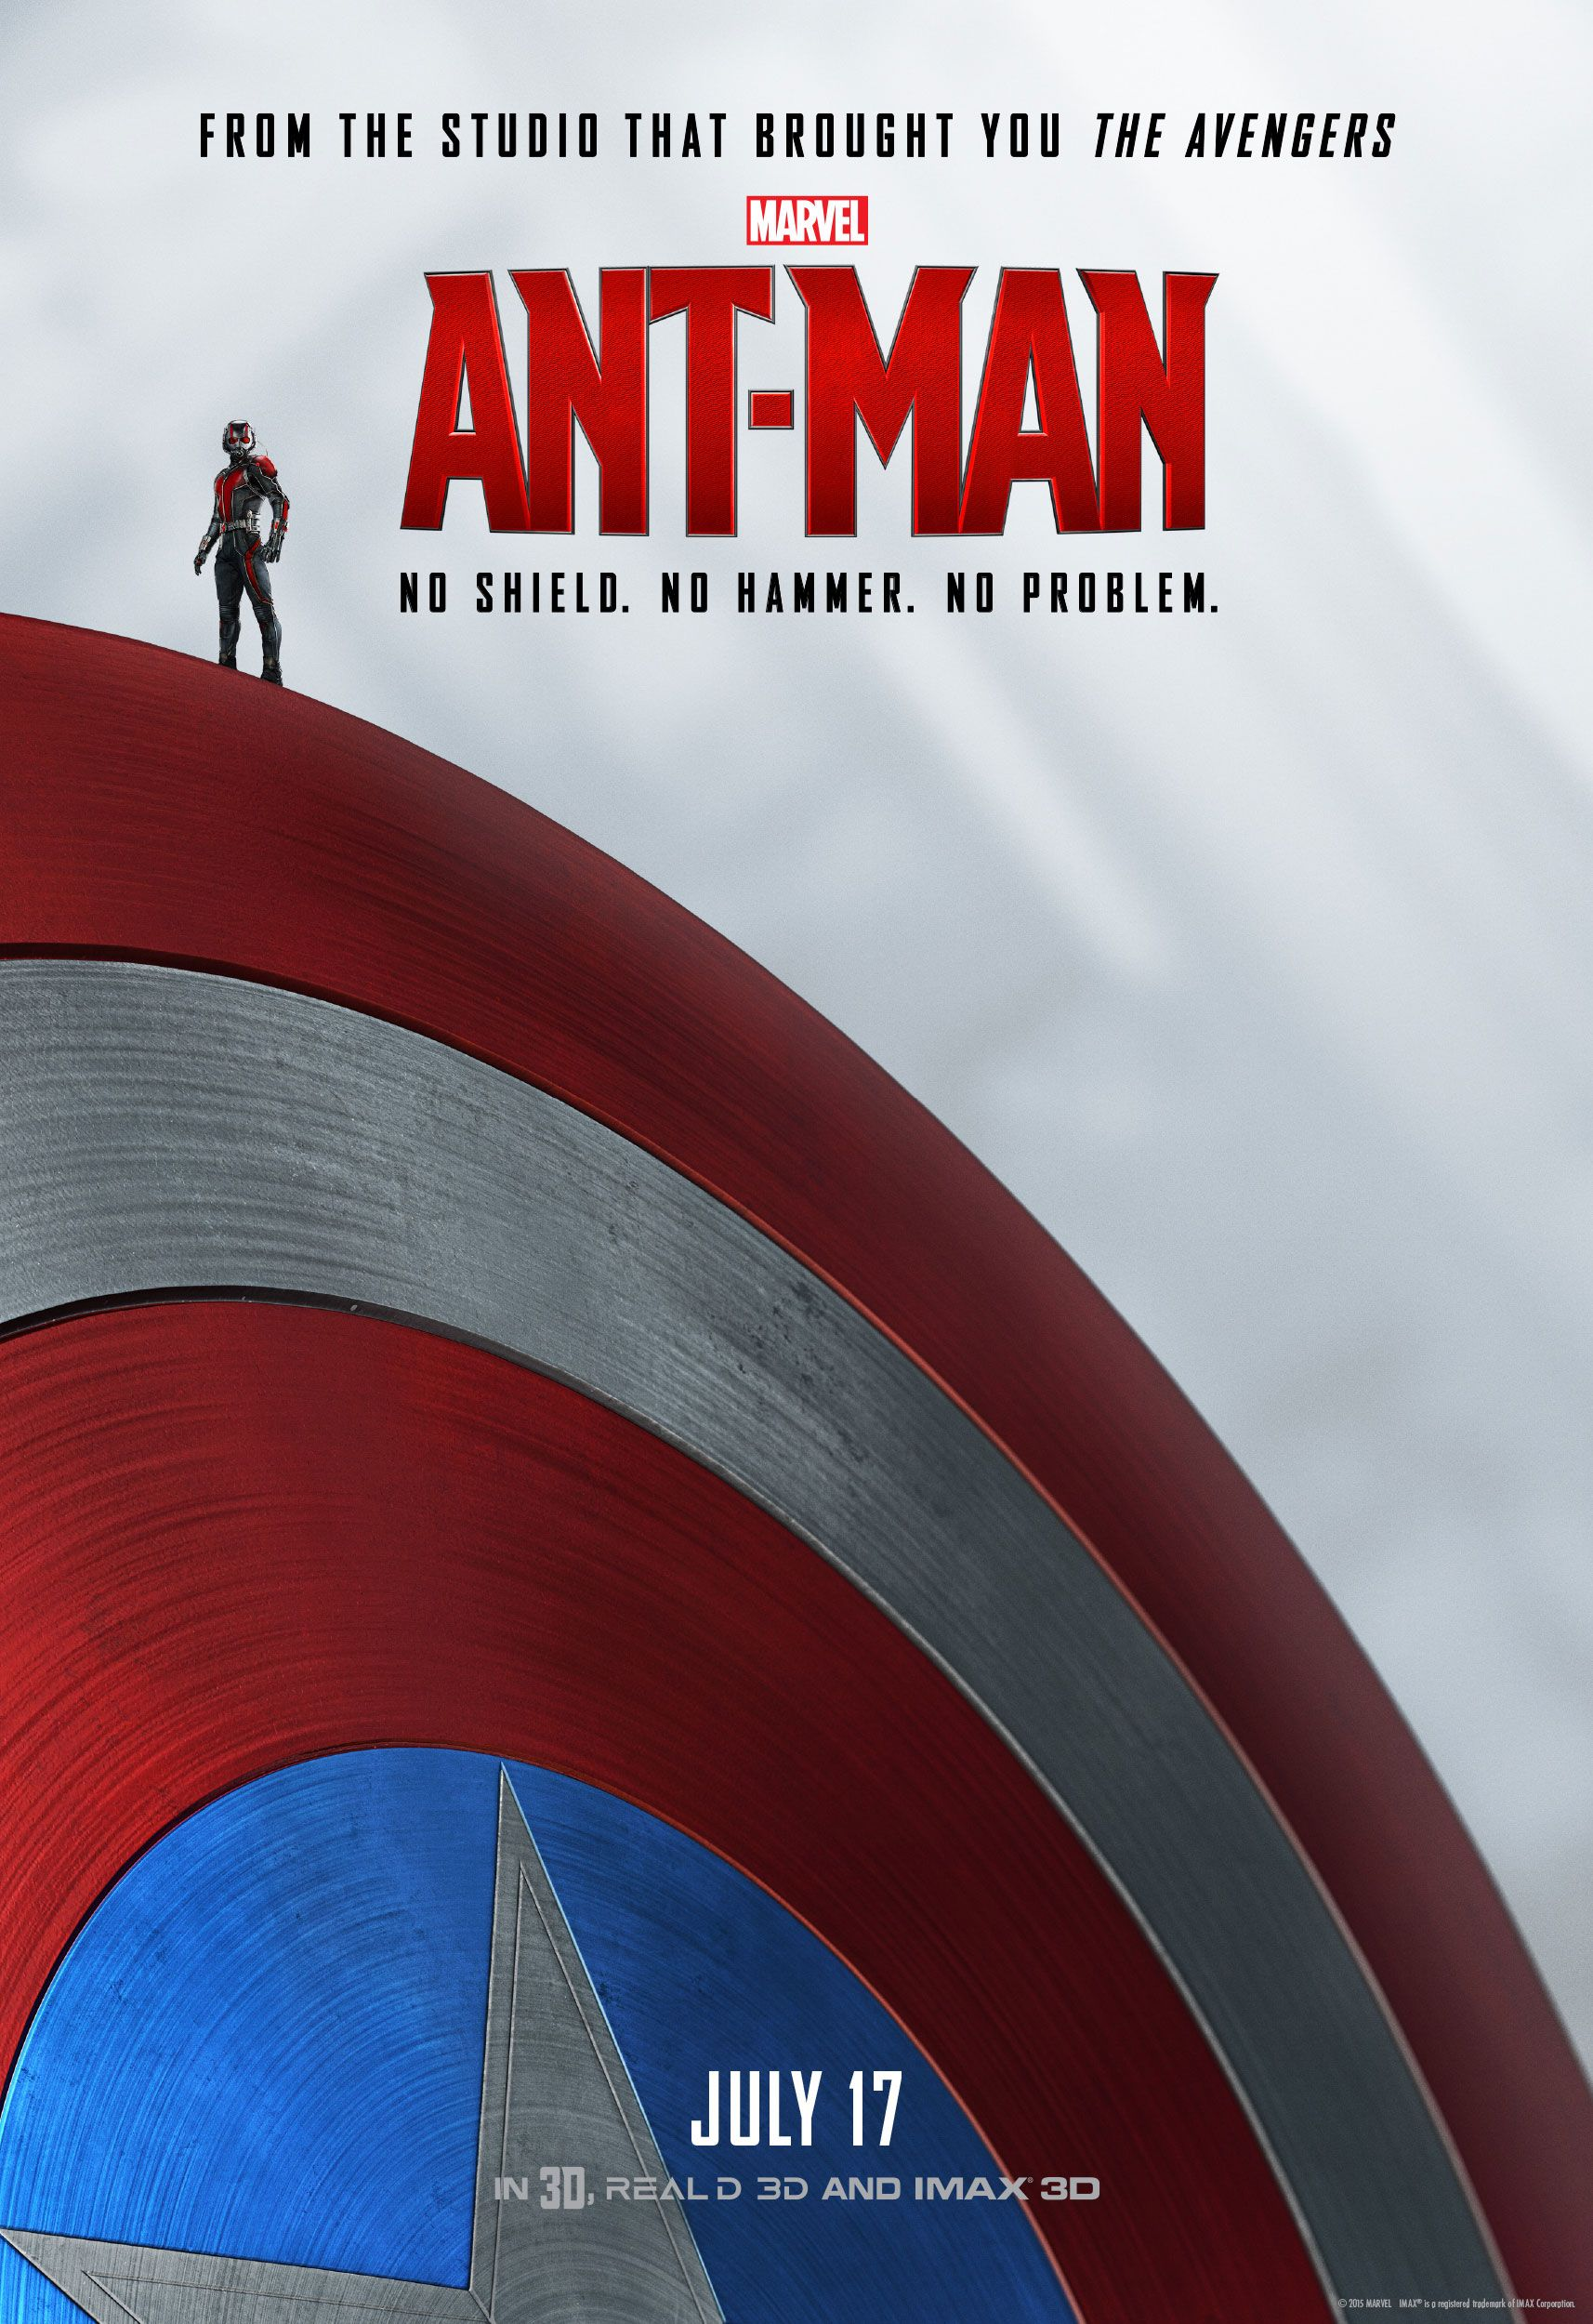 antman posters feature title hero posed with the avengers